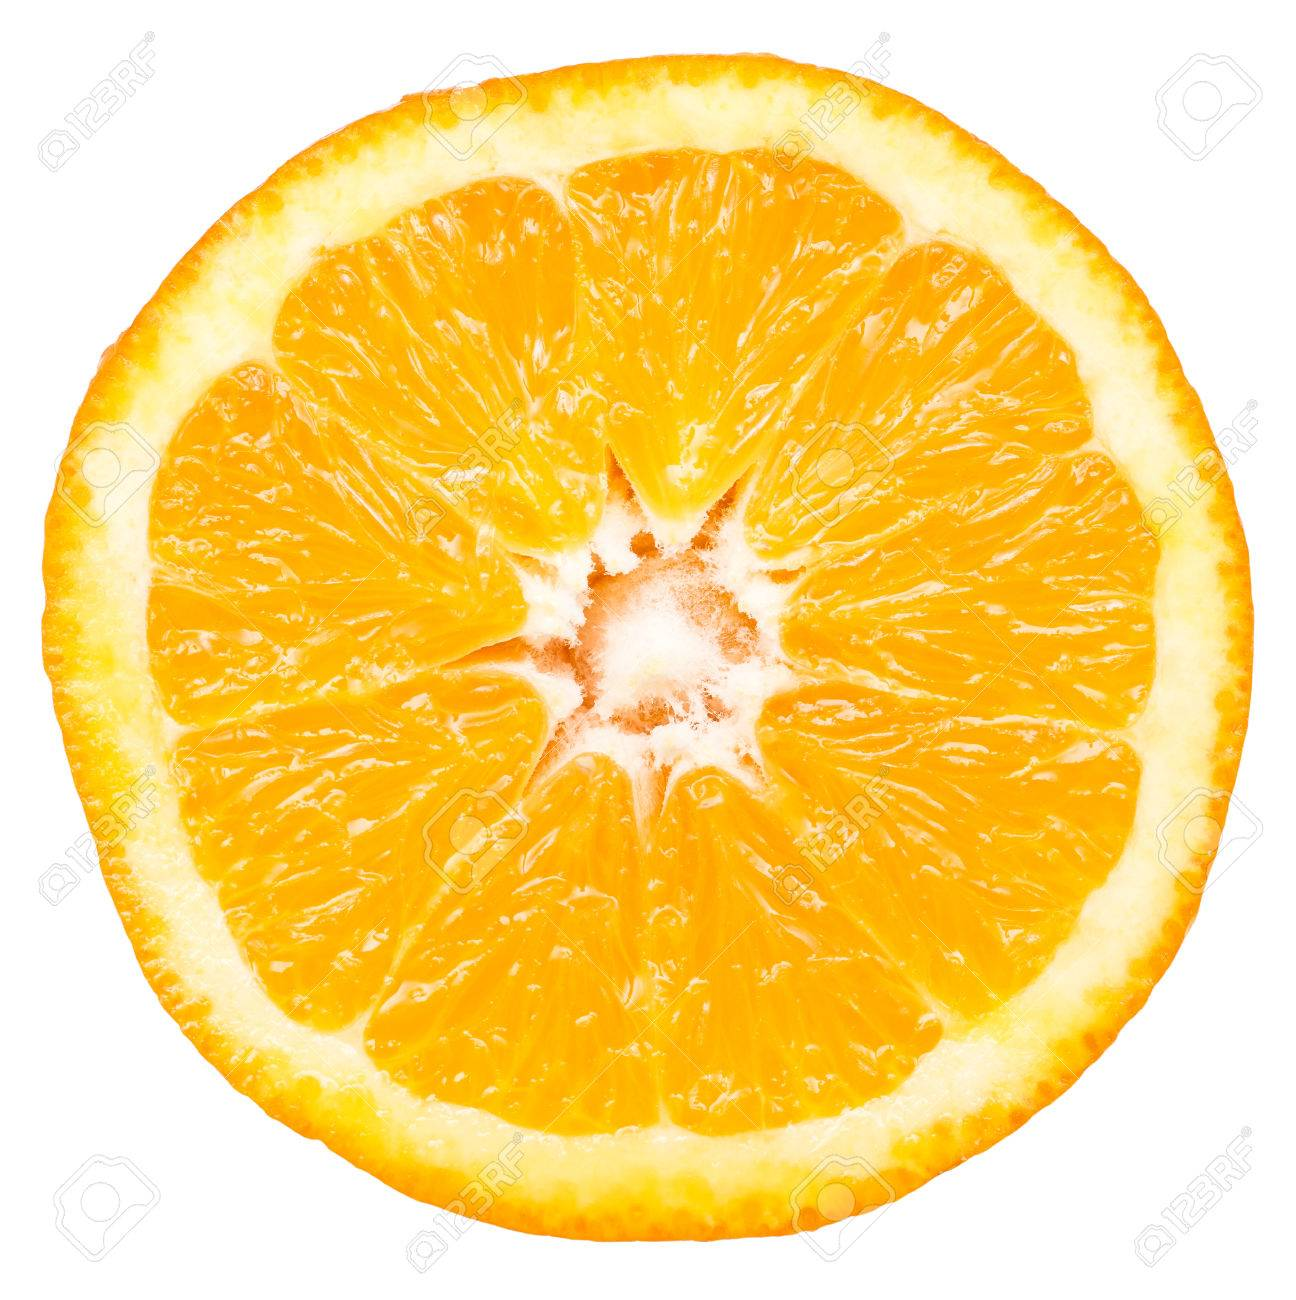 orange slice isolated stock photo picture and royalty free image